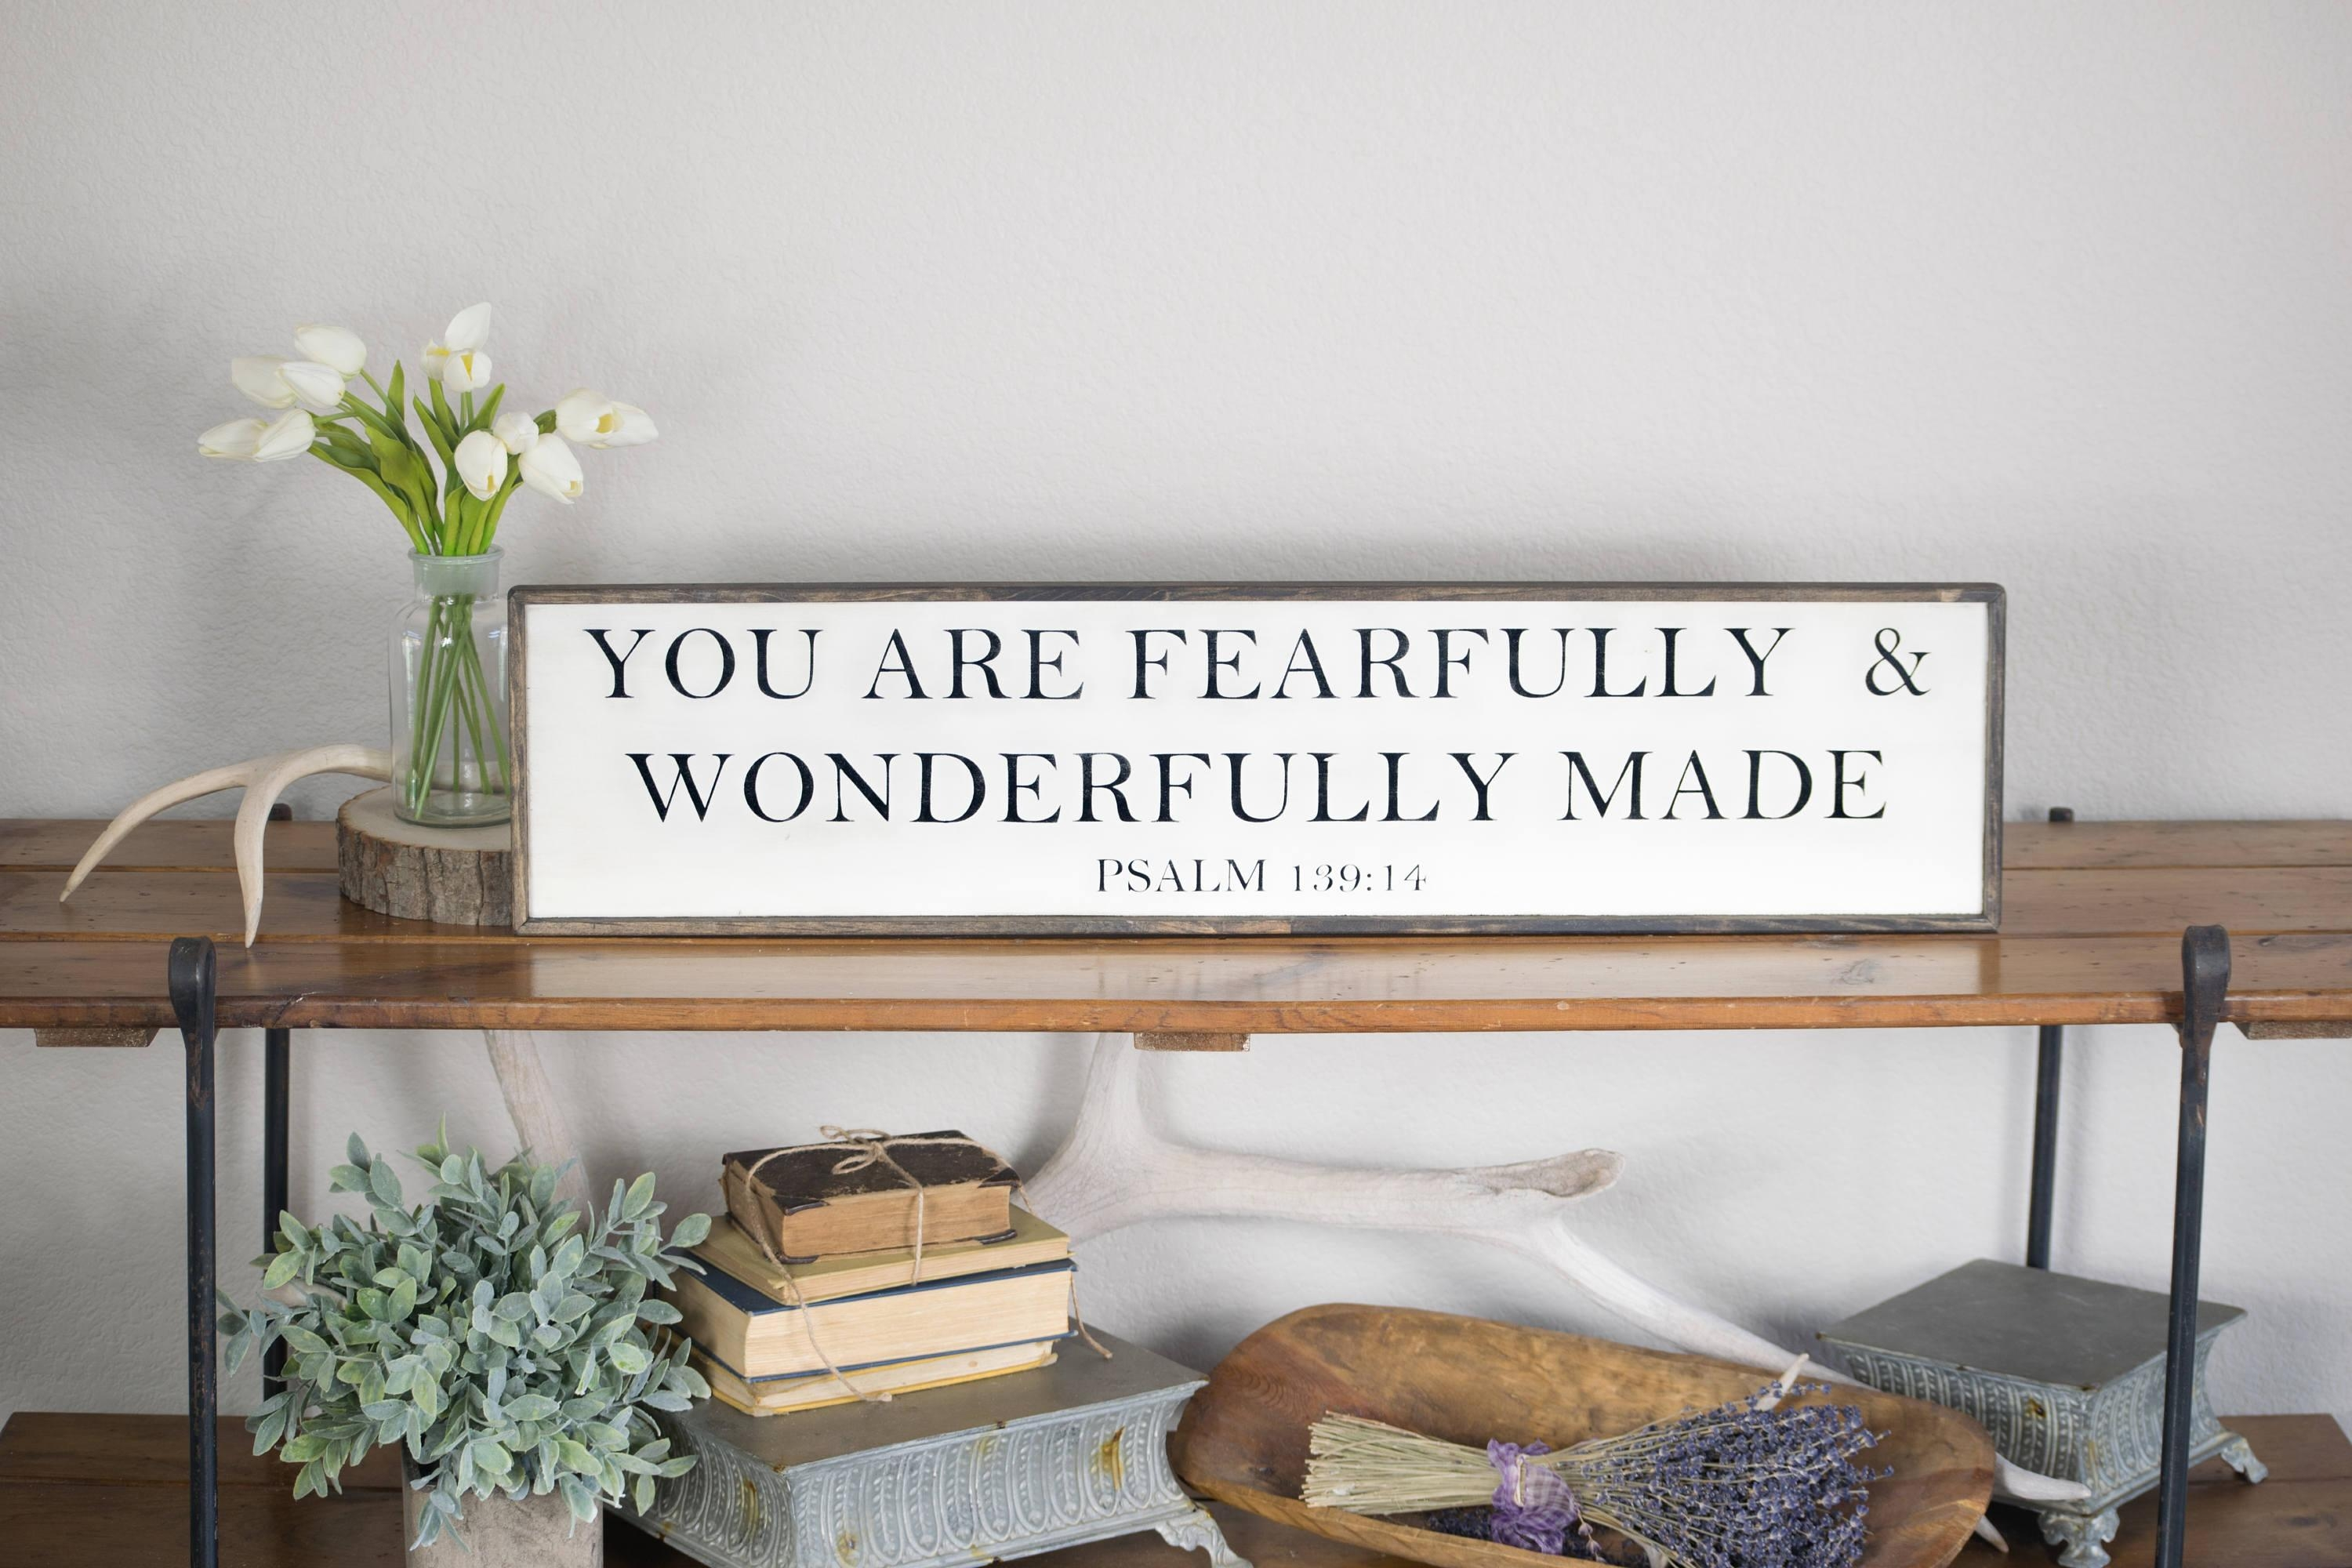 You Are Fearfully And Wonderfully Made Psalm 139:14 Sign with regard to Fearfully and Wonderfully Made Wall Art